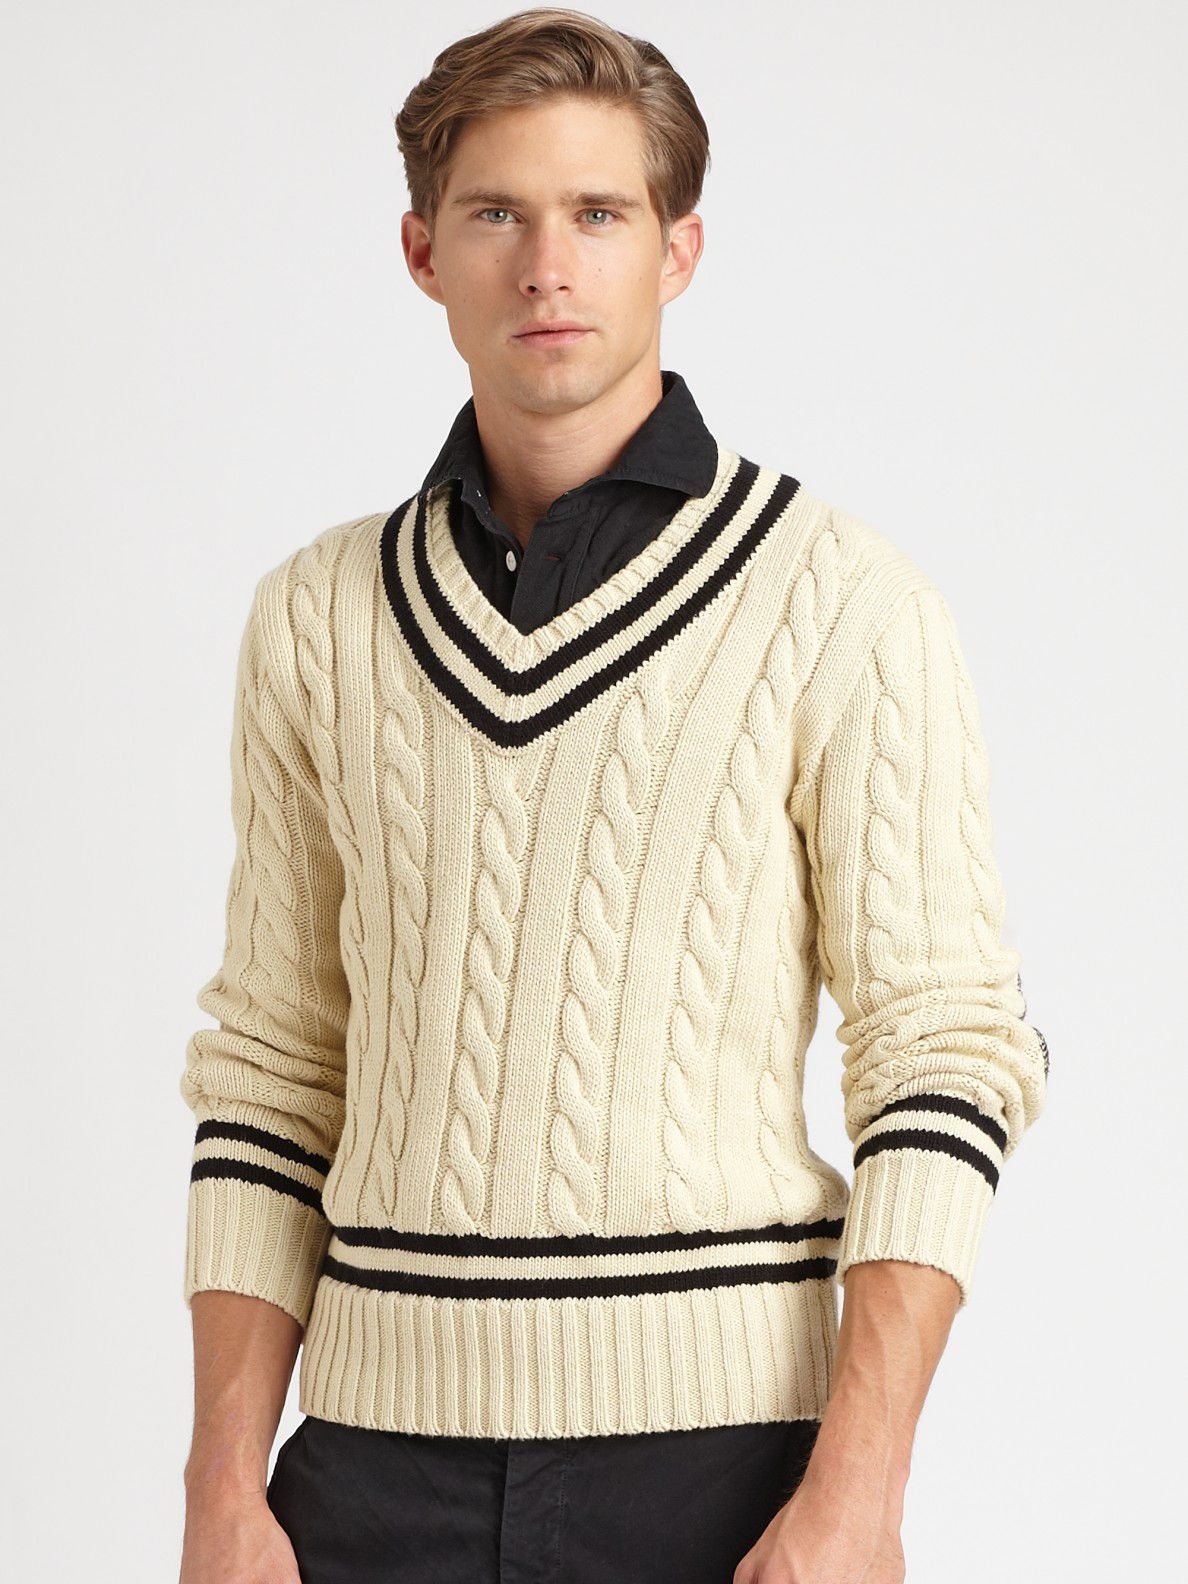 54e7ae7d8f400 ... best price lyst polo ralph lauren cabled v neck cricket sweater in  natural 3eca4 c0238